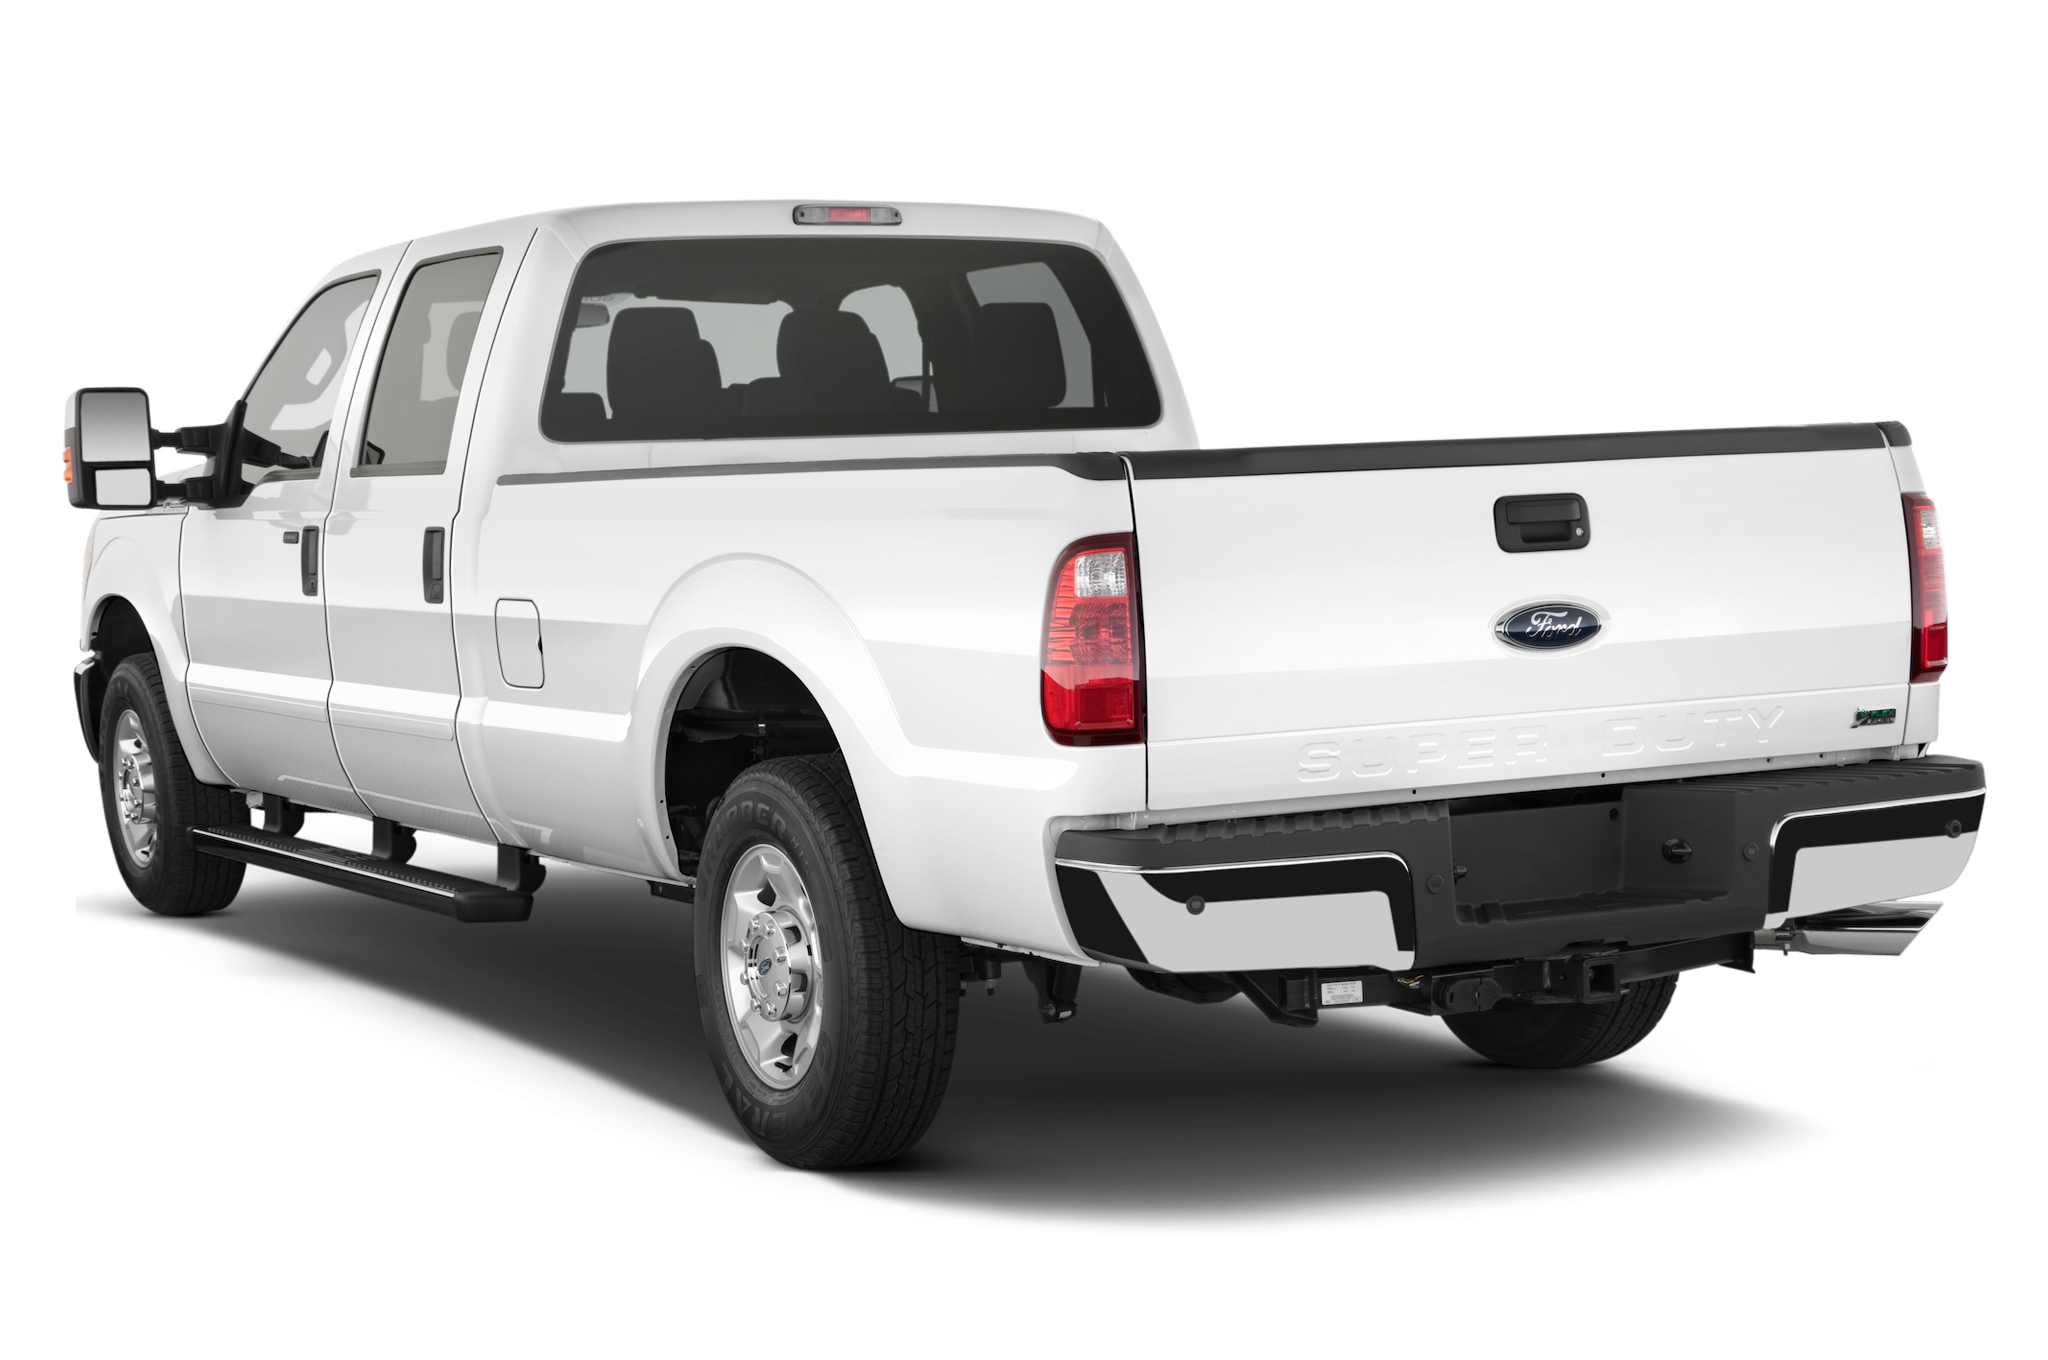 2013 Ford F Series Super Duty Platinum Fords Most Luxurious Truck 2000 F250 54 99